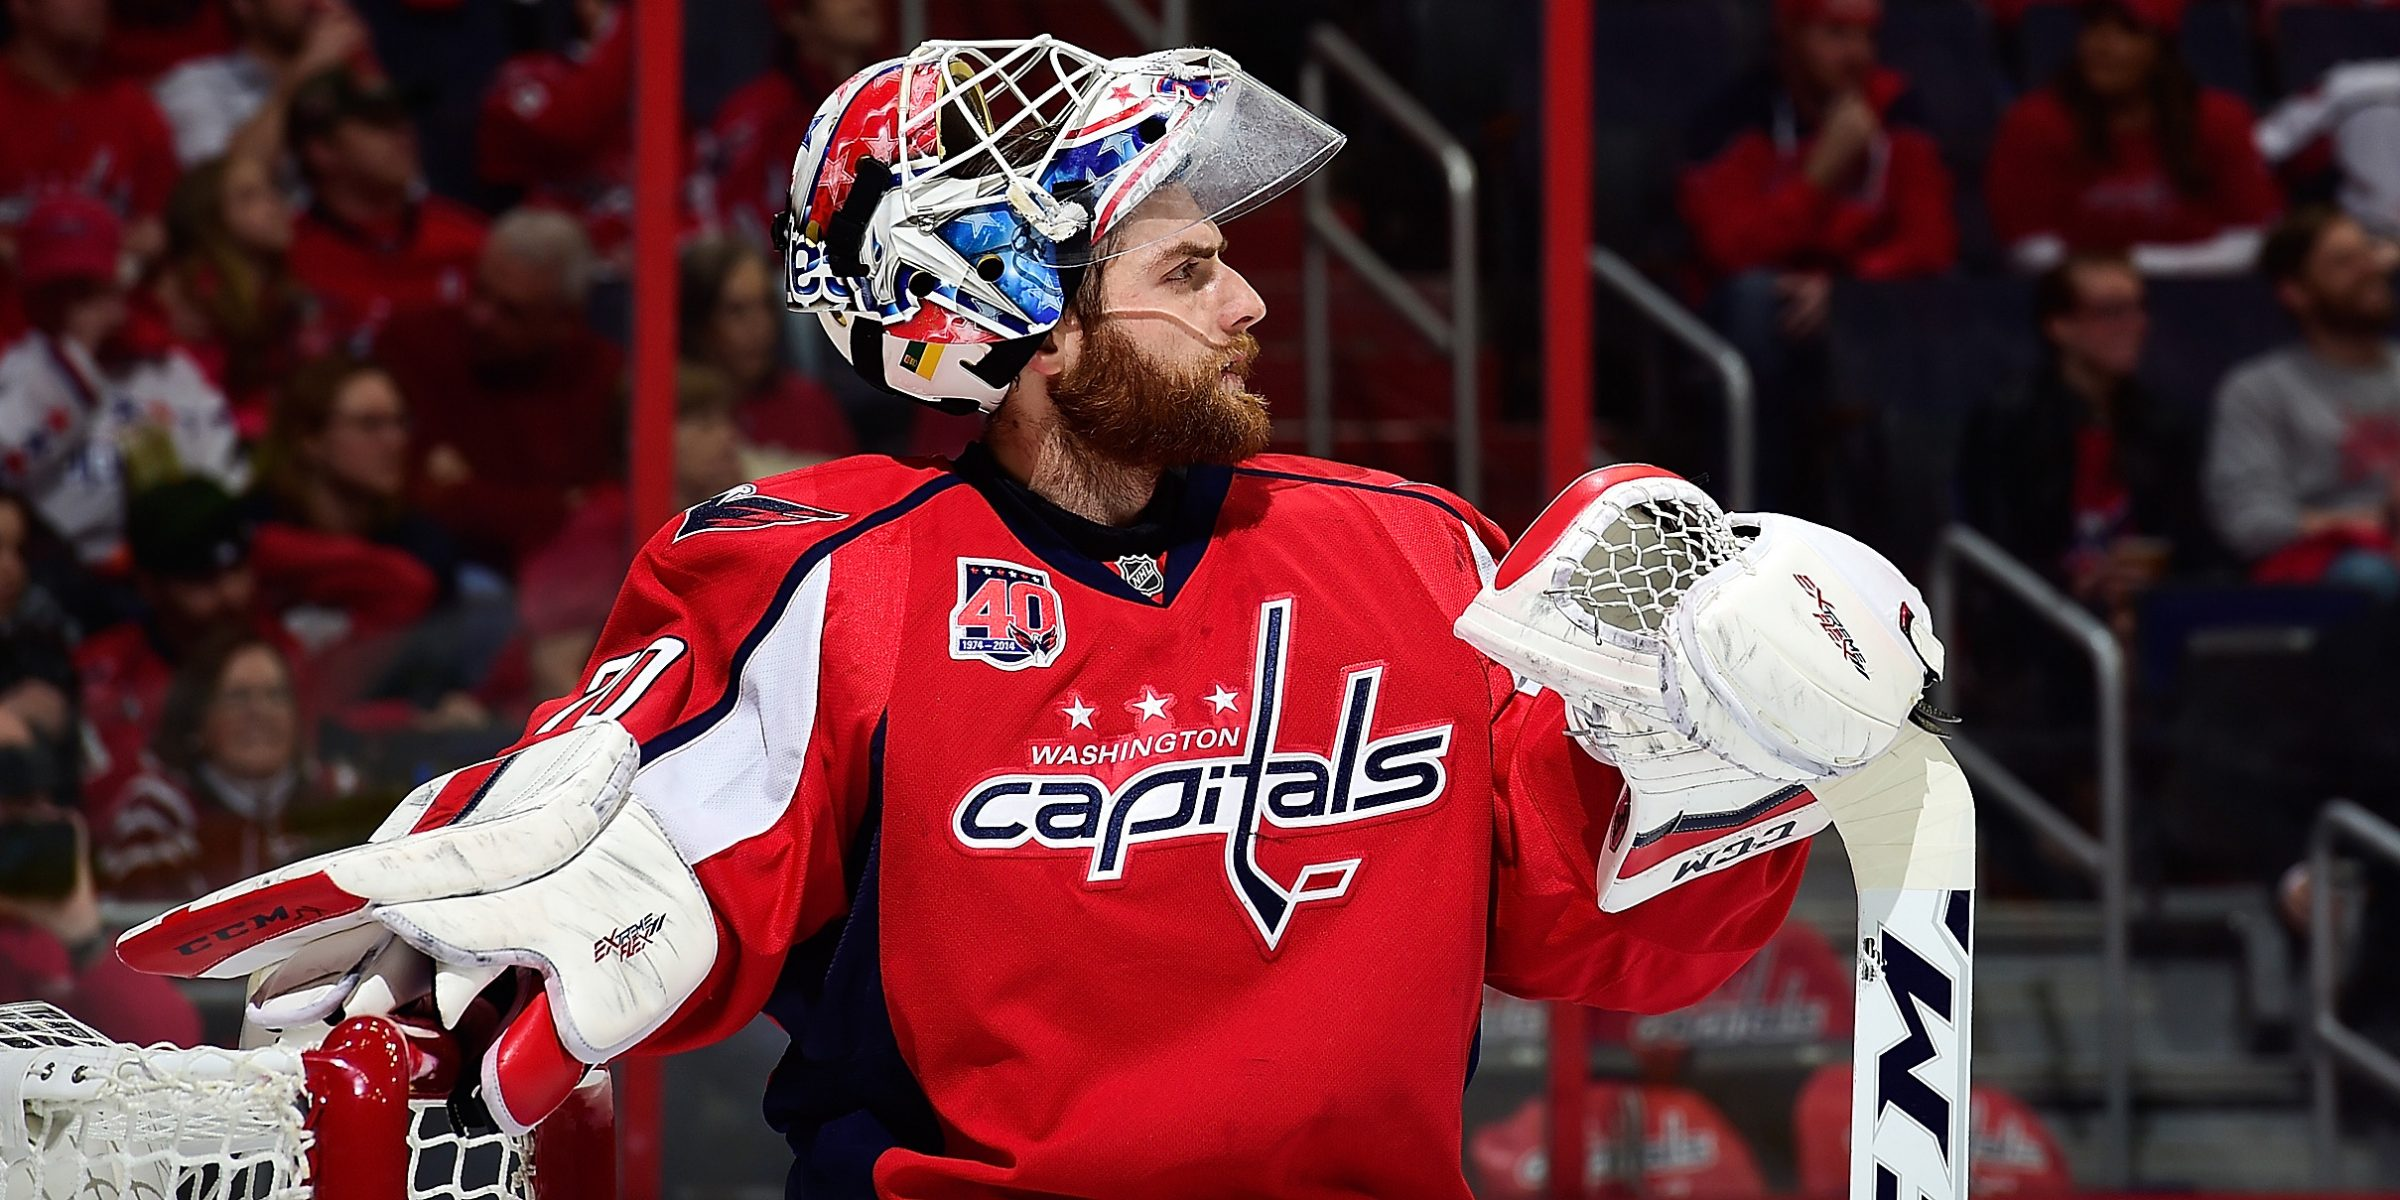 Braden Holtby The Players Tribune The Voice Of The Game